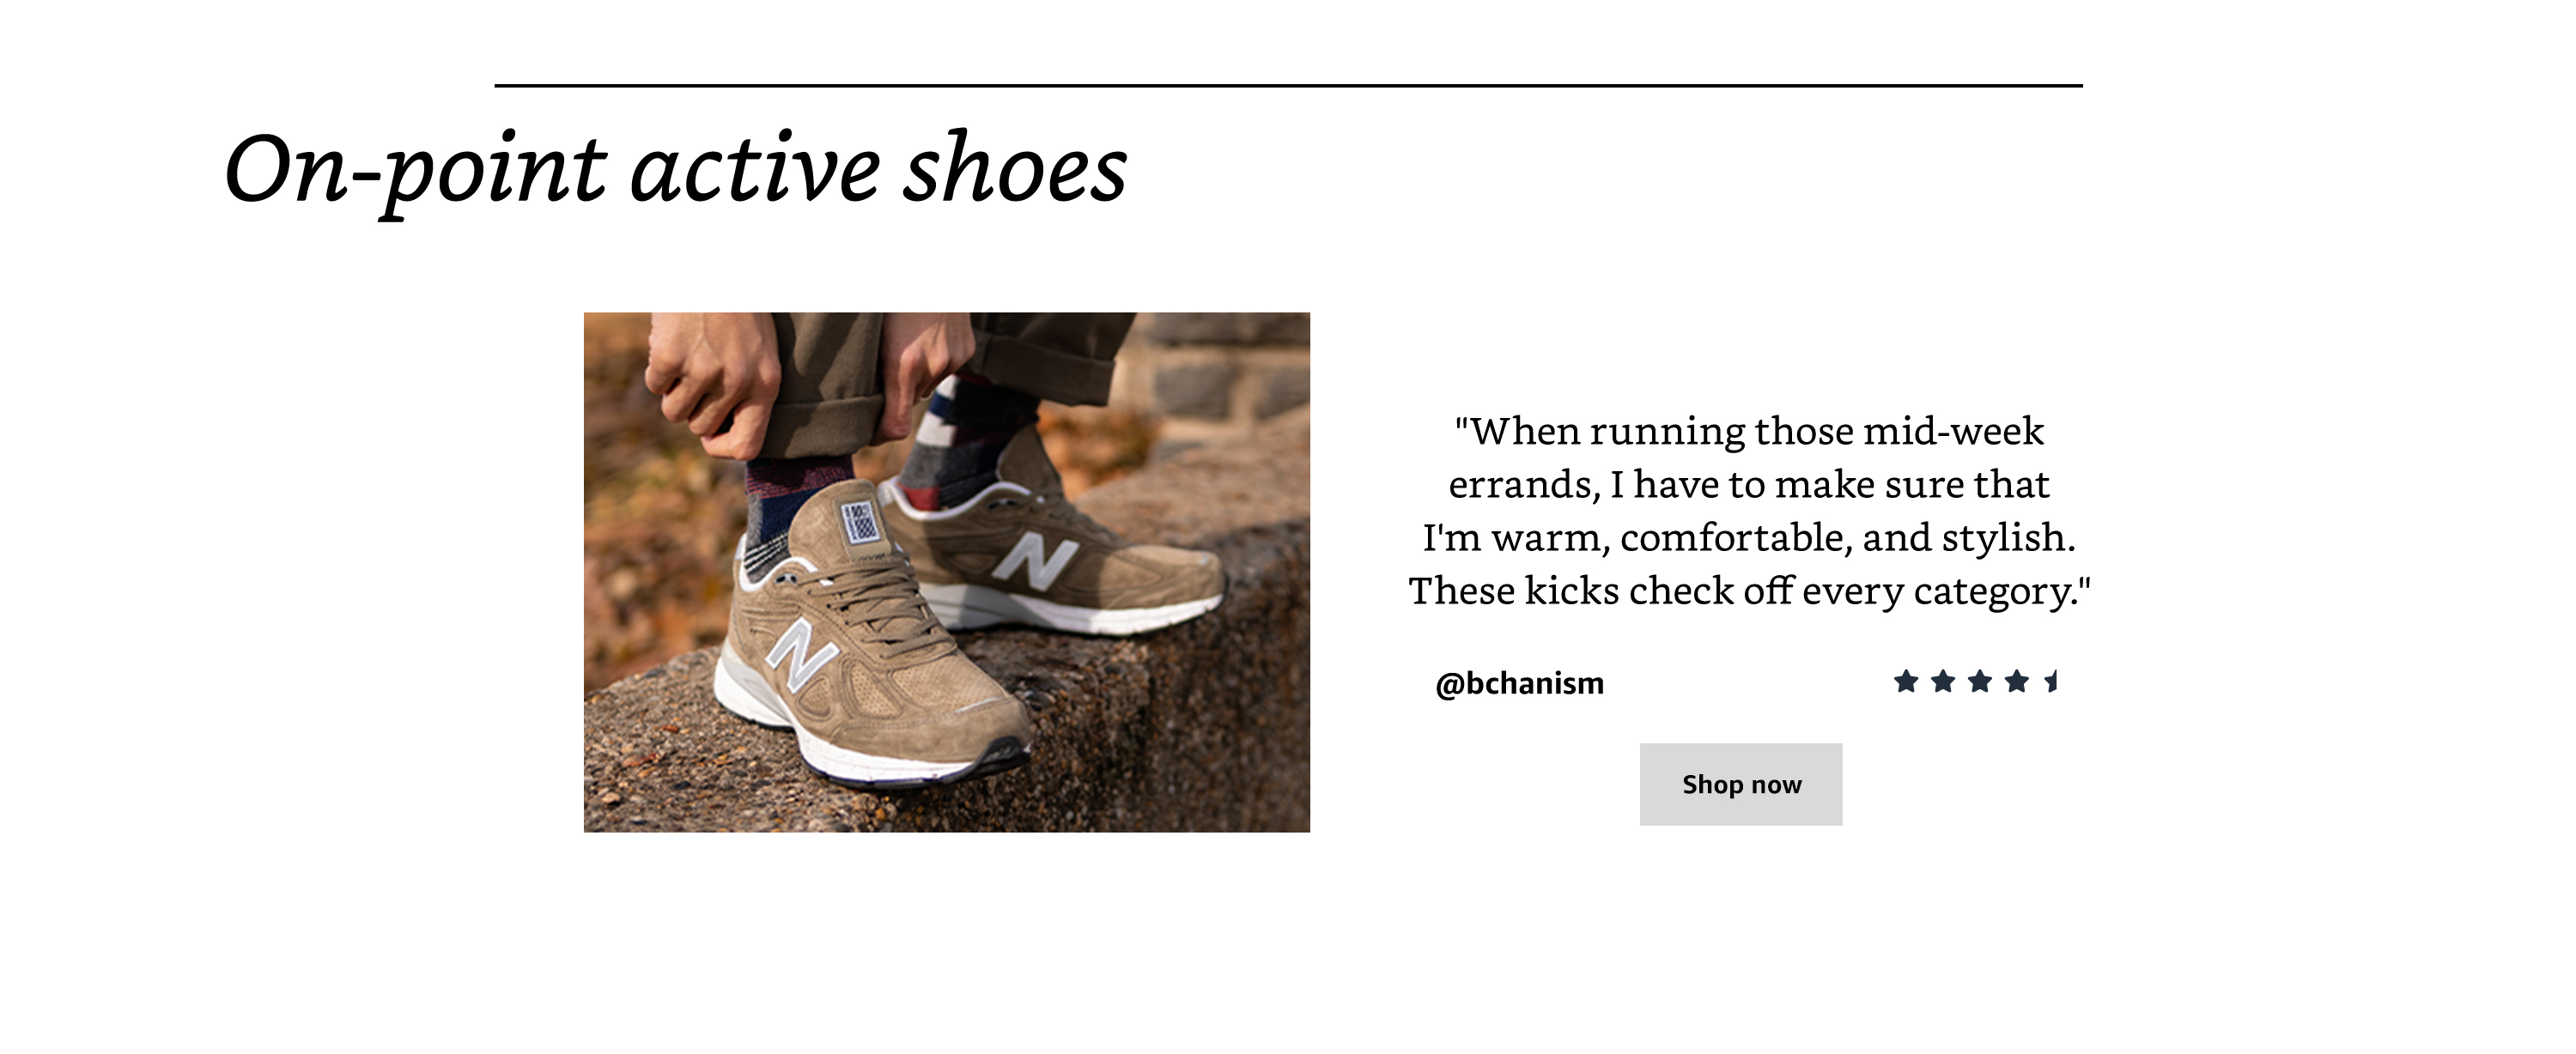 On-point active shoes